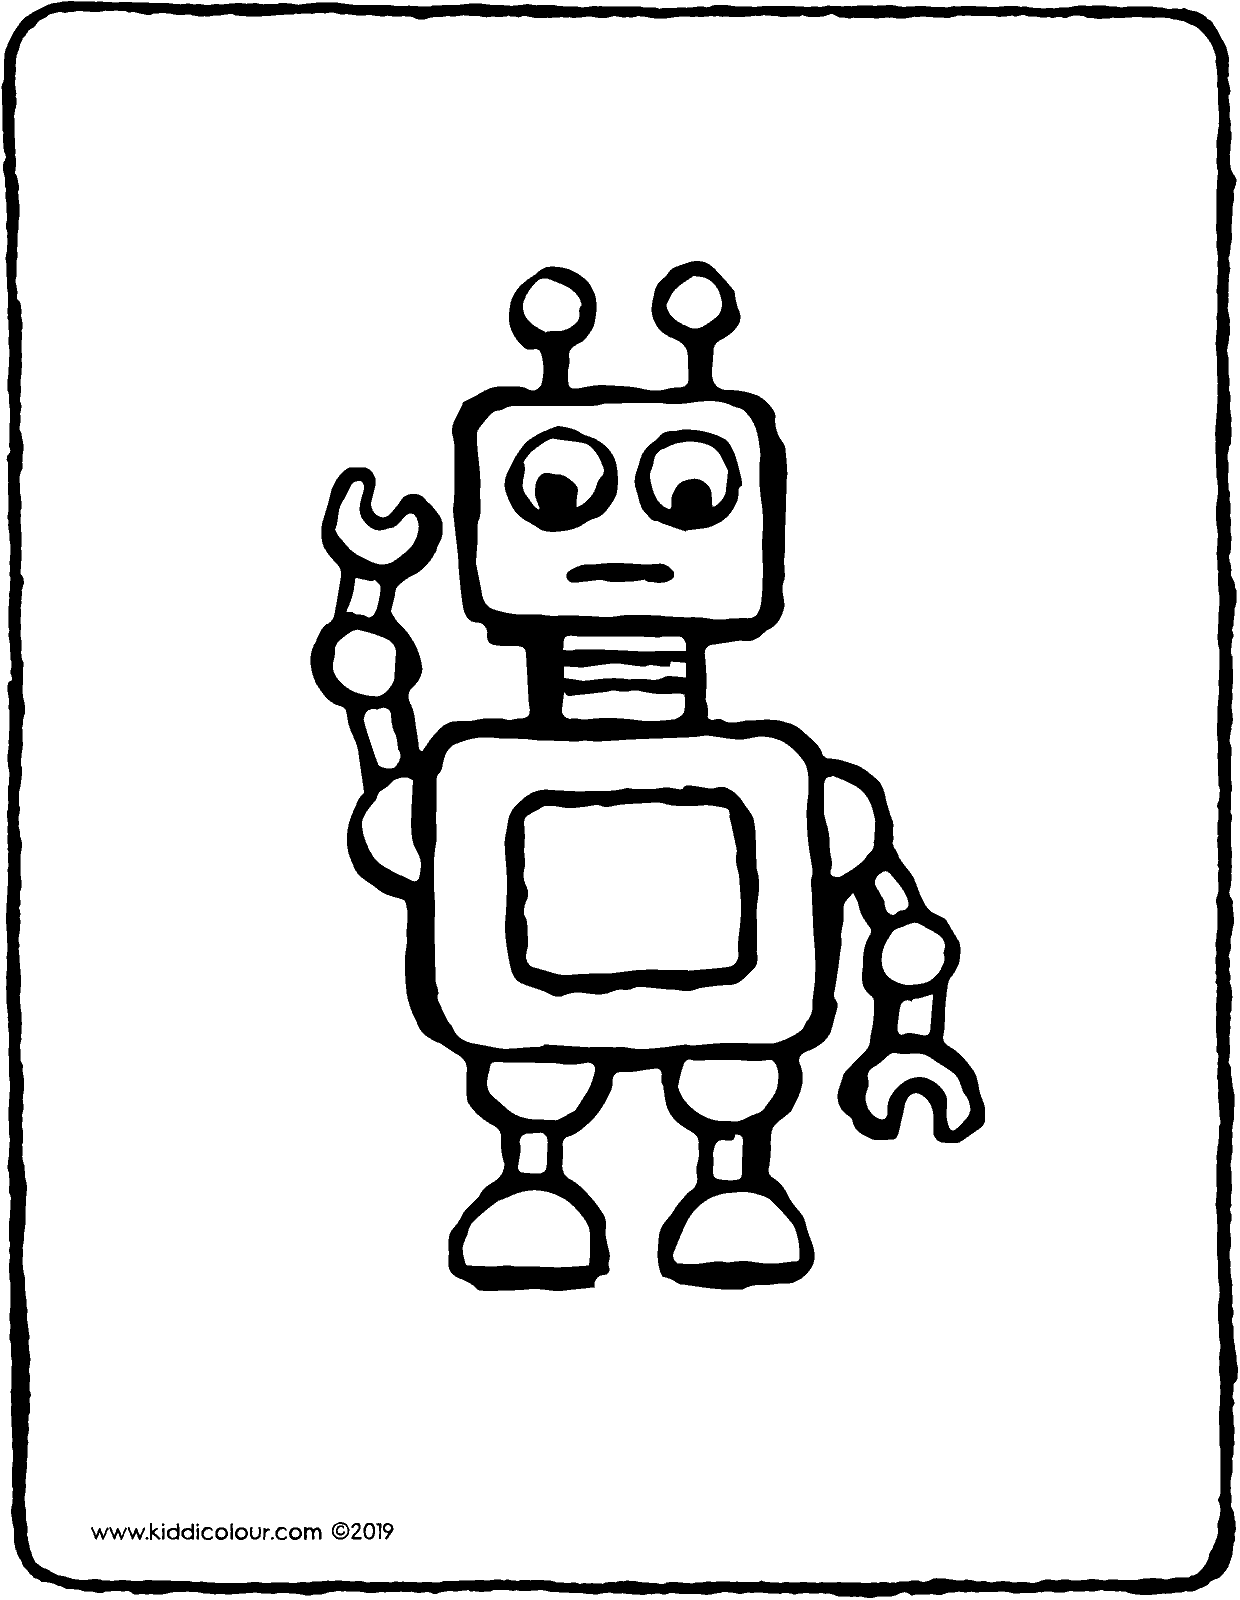 toy robot colouring page drawing picture 01V